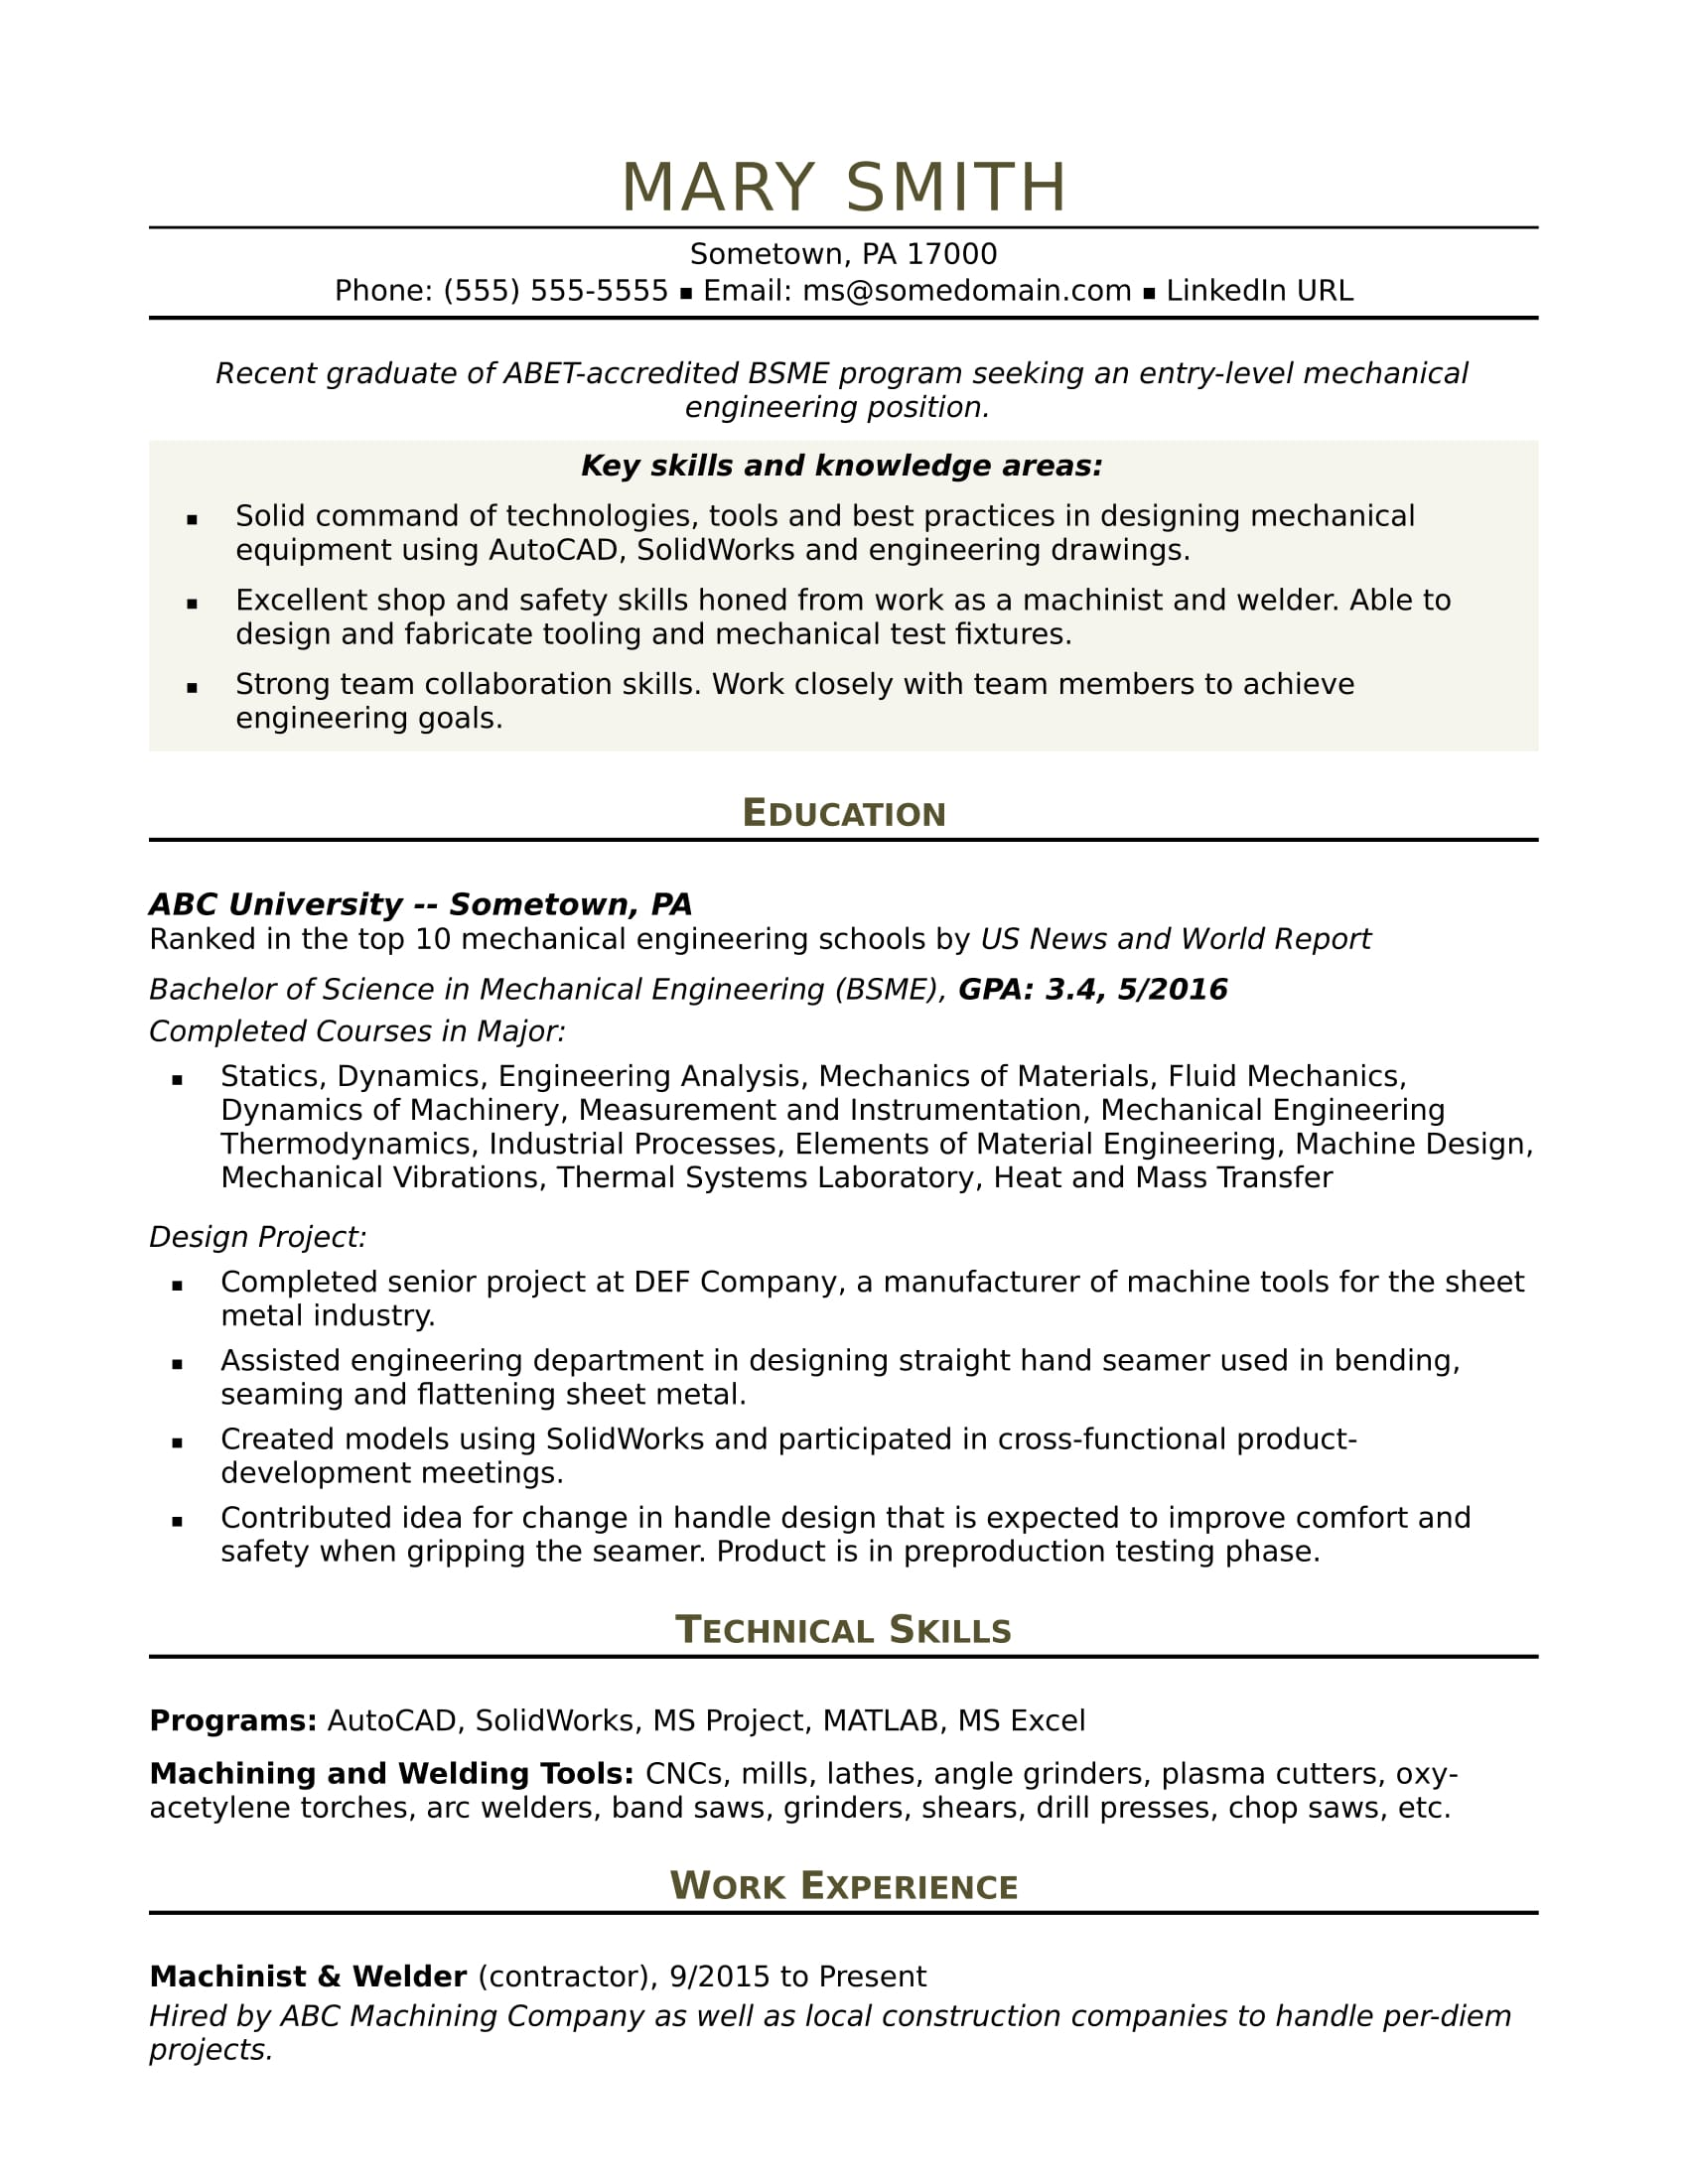 Sample resume for an entry level mechanical engineer monster sample resume for an entry level mechanical engineer yelopaper Choice Image